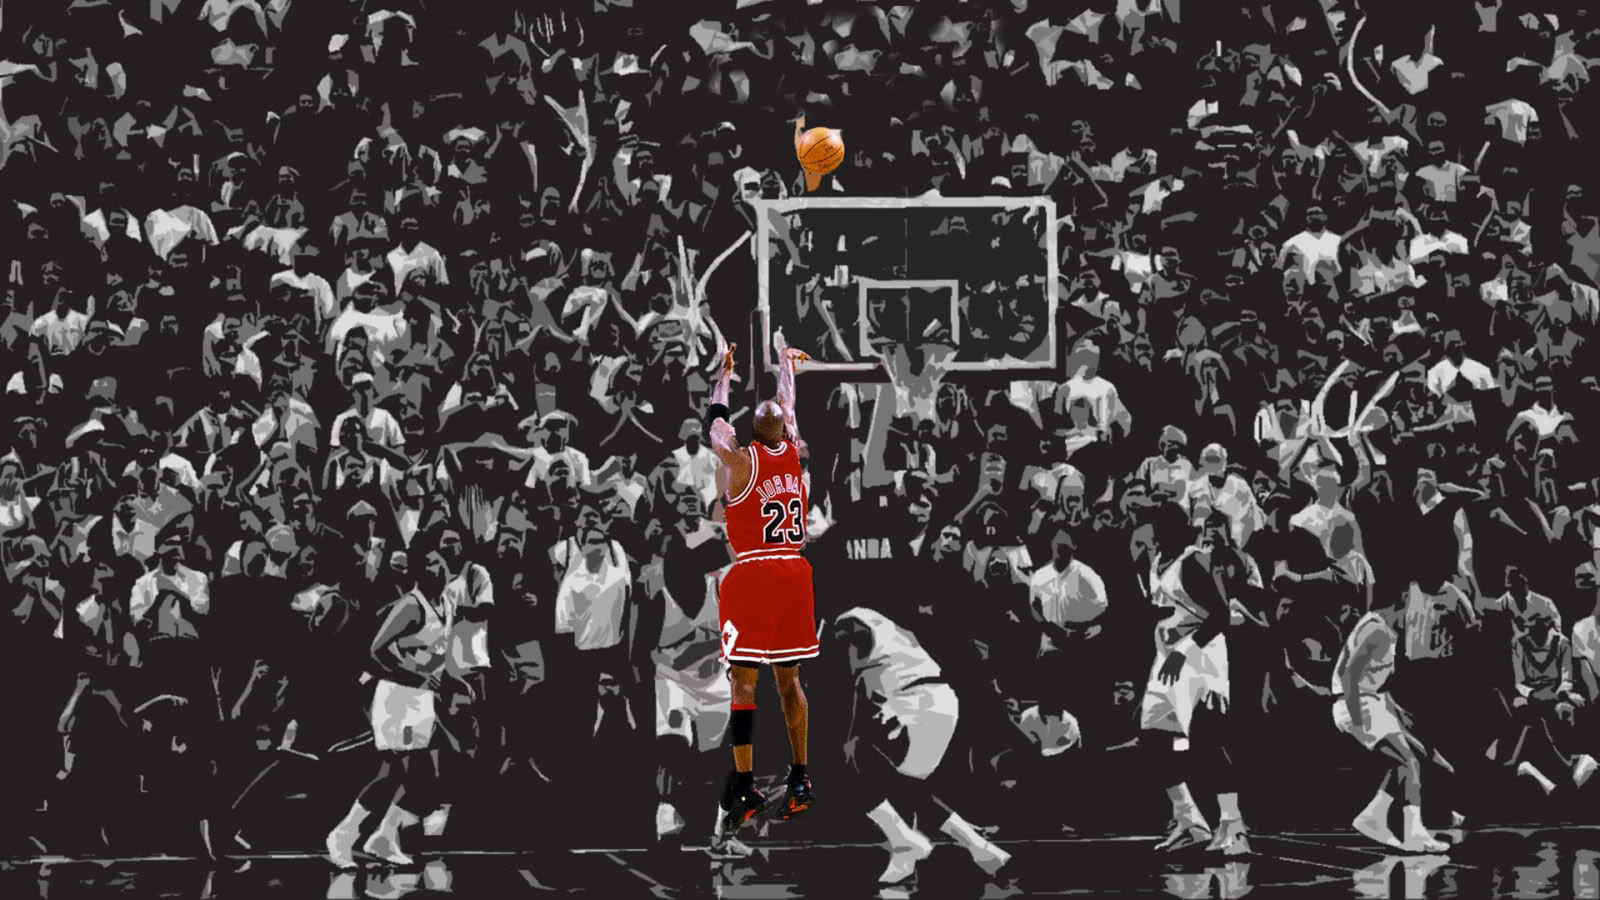 HD Michael Jordan Wallpaper